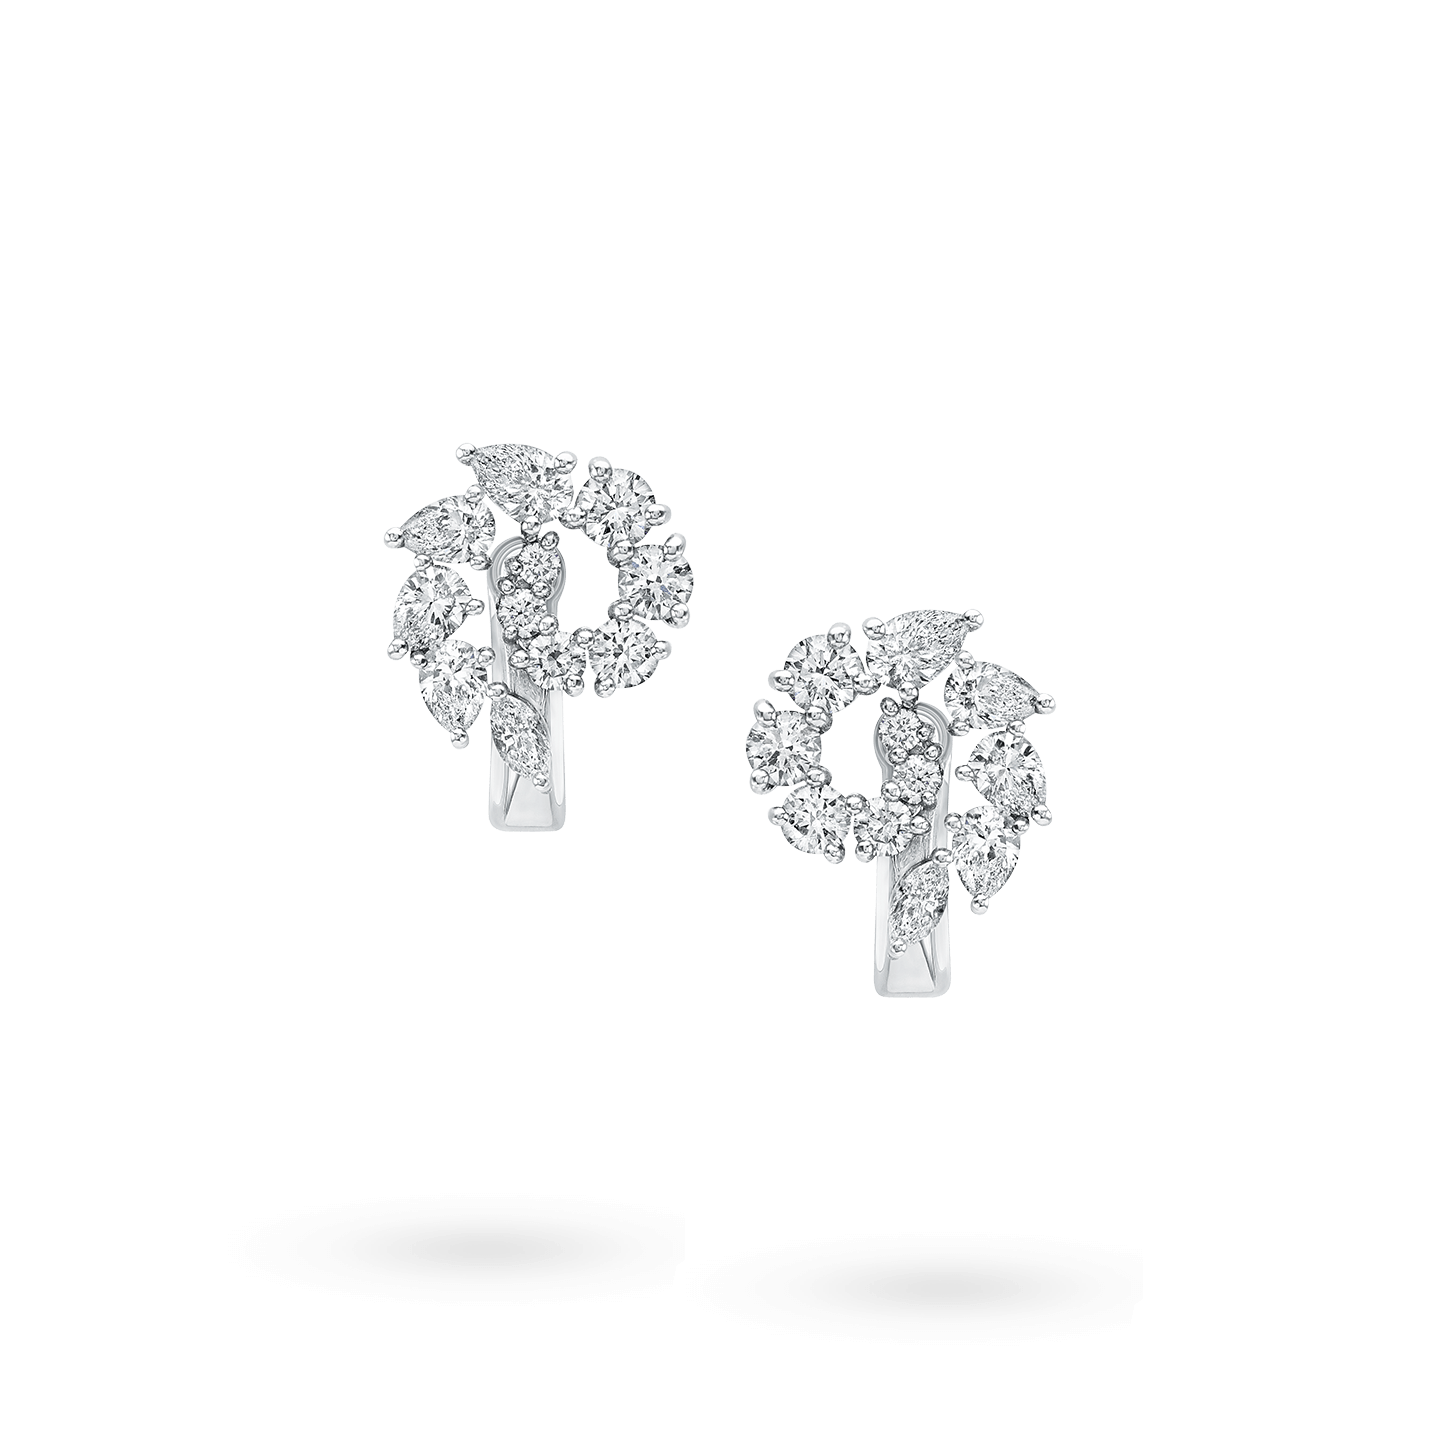 Open ClusterSmall Diamond Earrings, Product Image 1